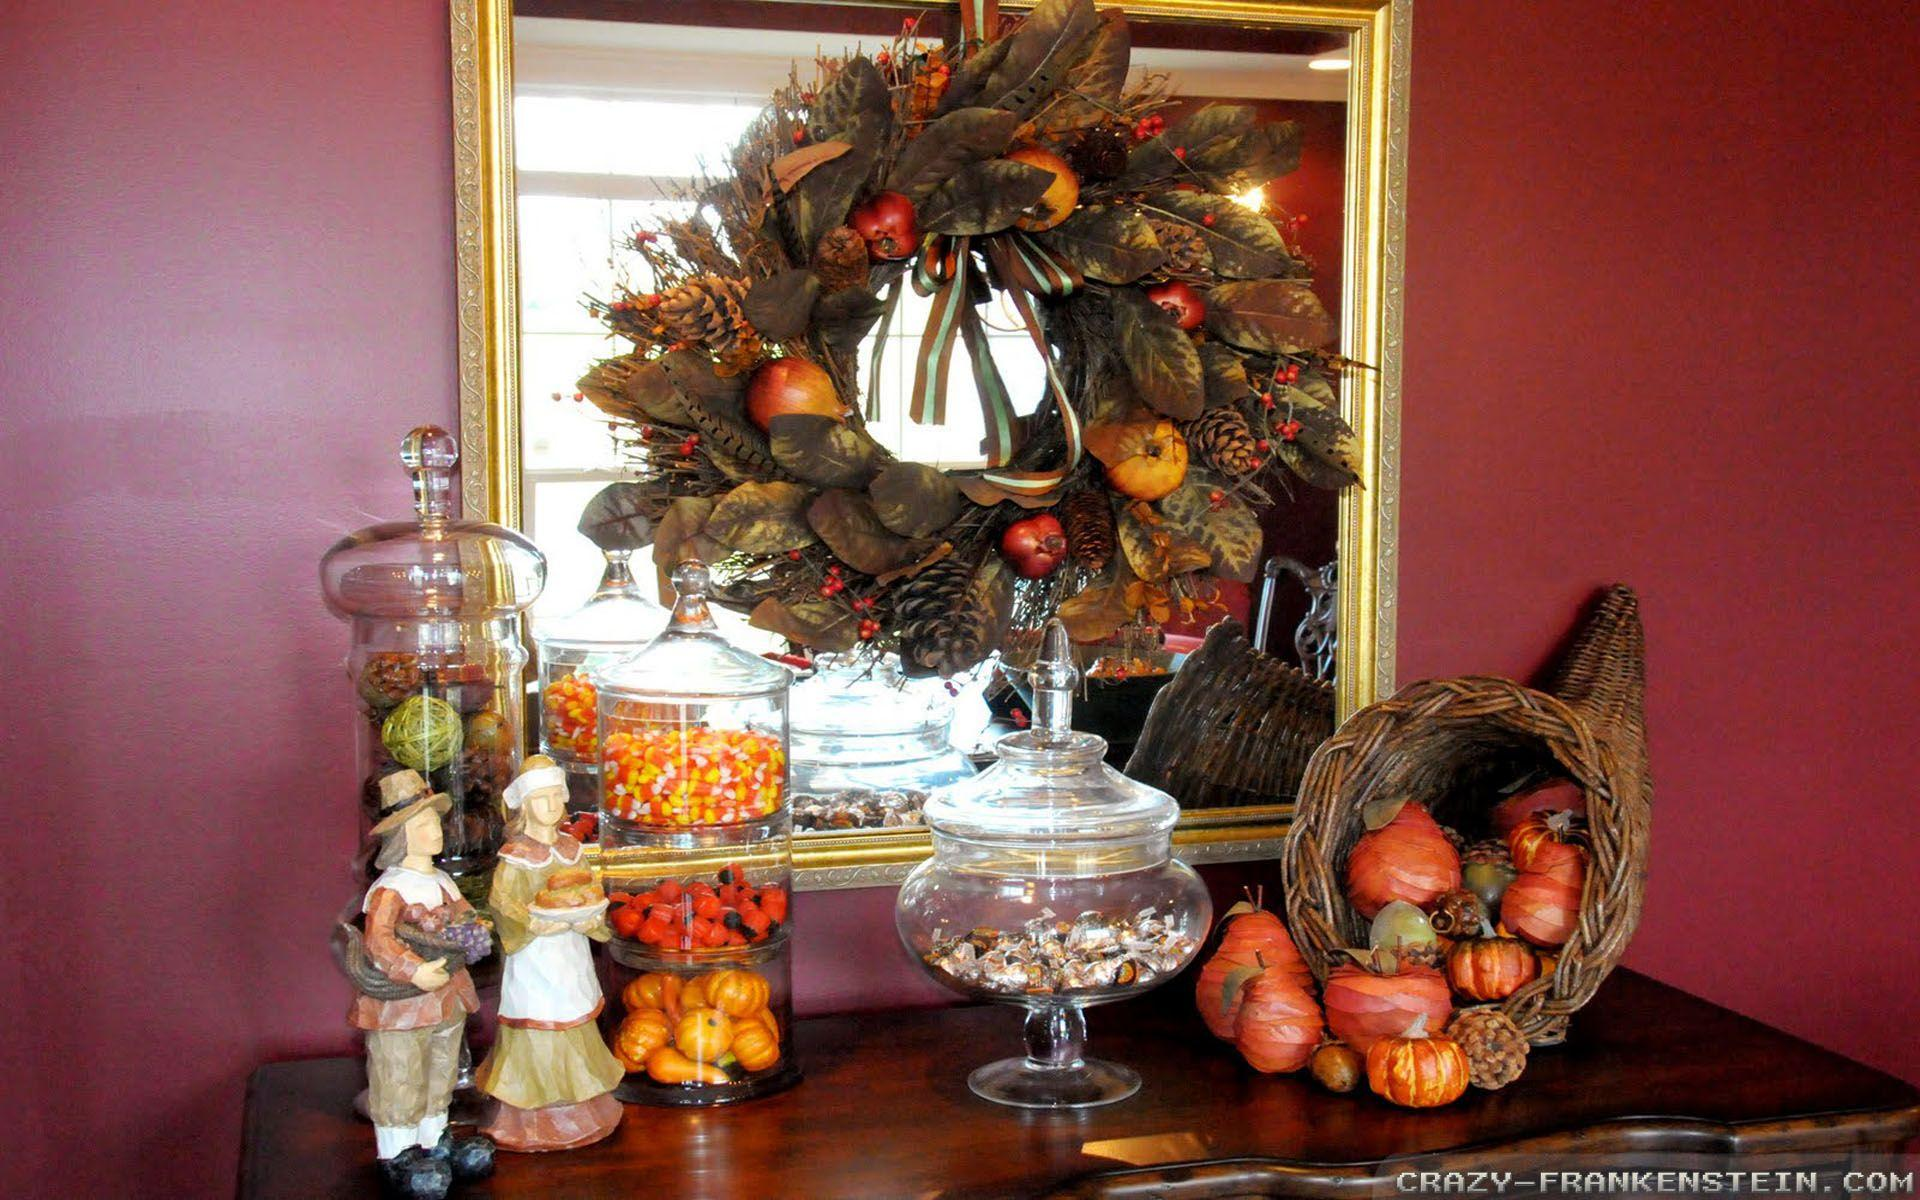 Thanksgiving Day Decorations wallpapers 2 - Crazy Frankenstein